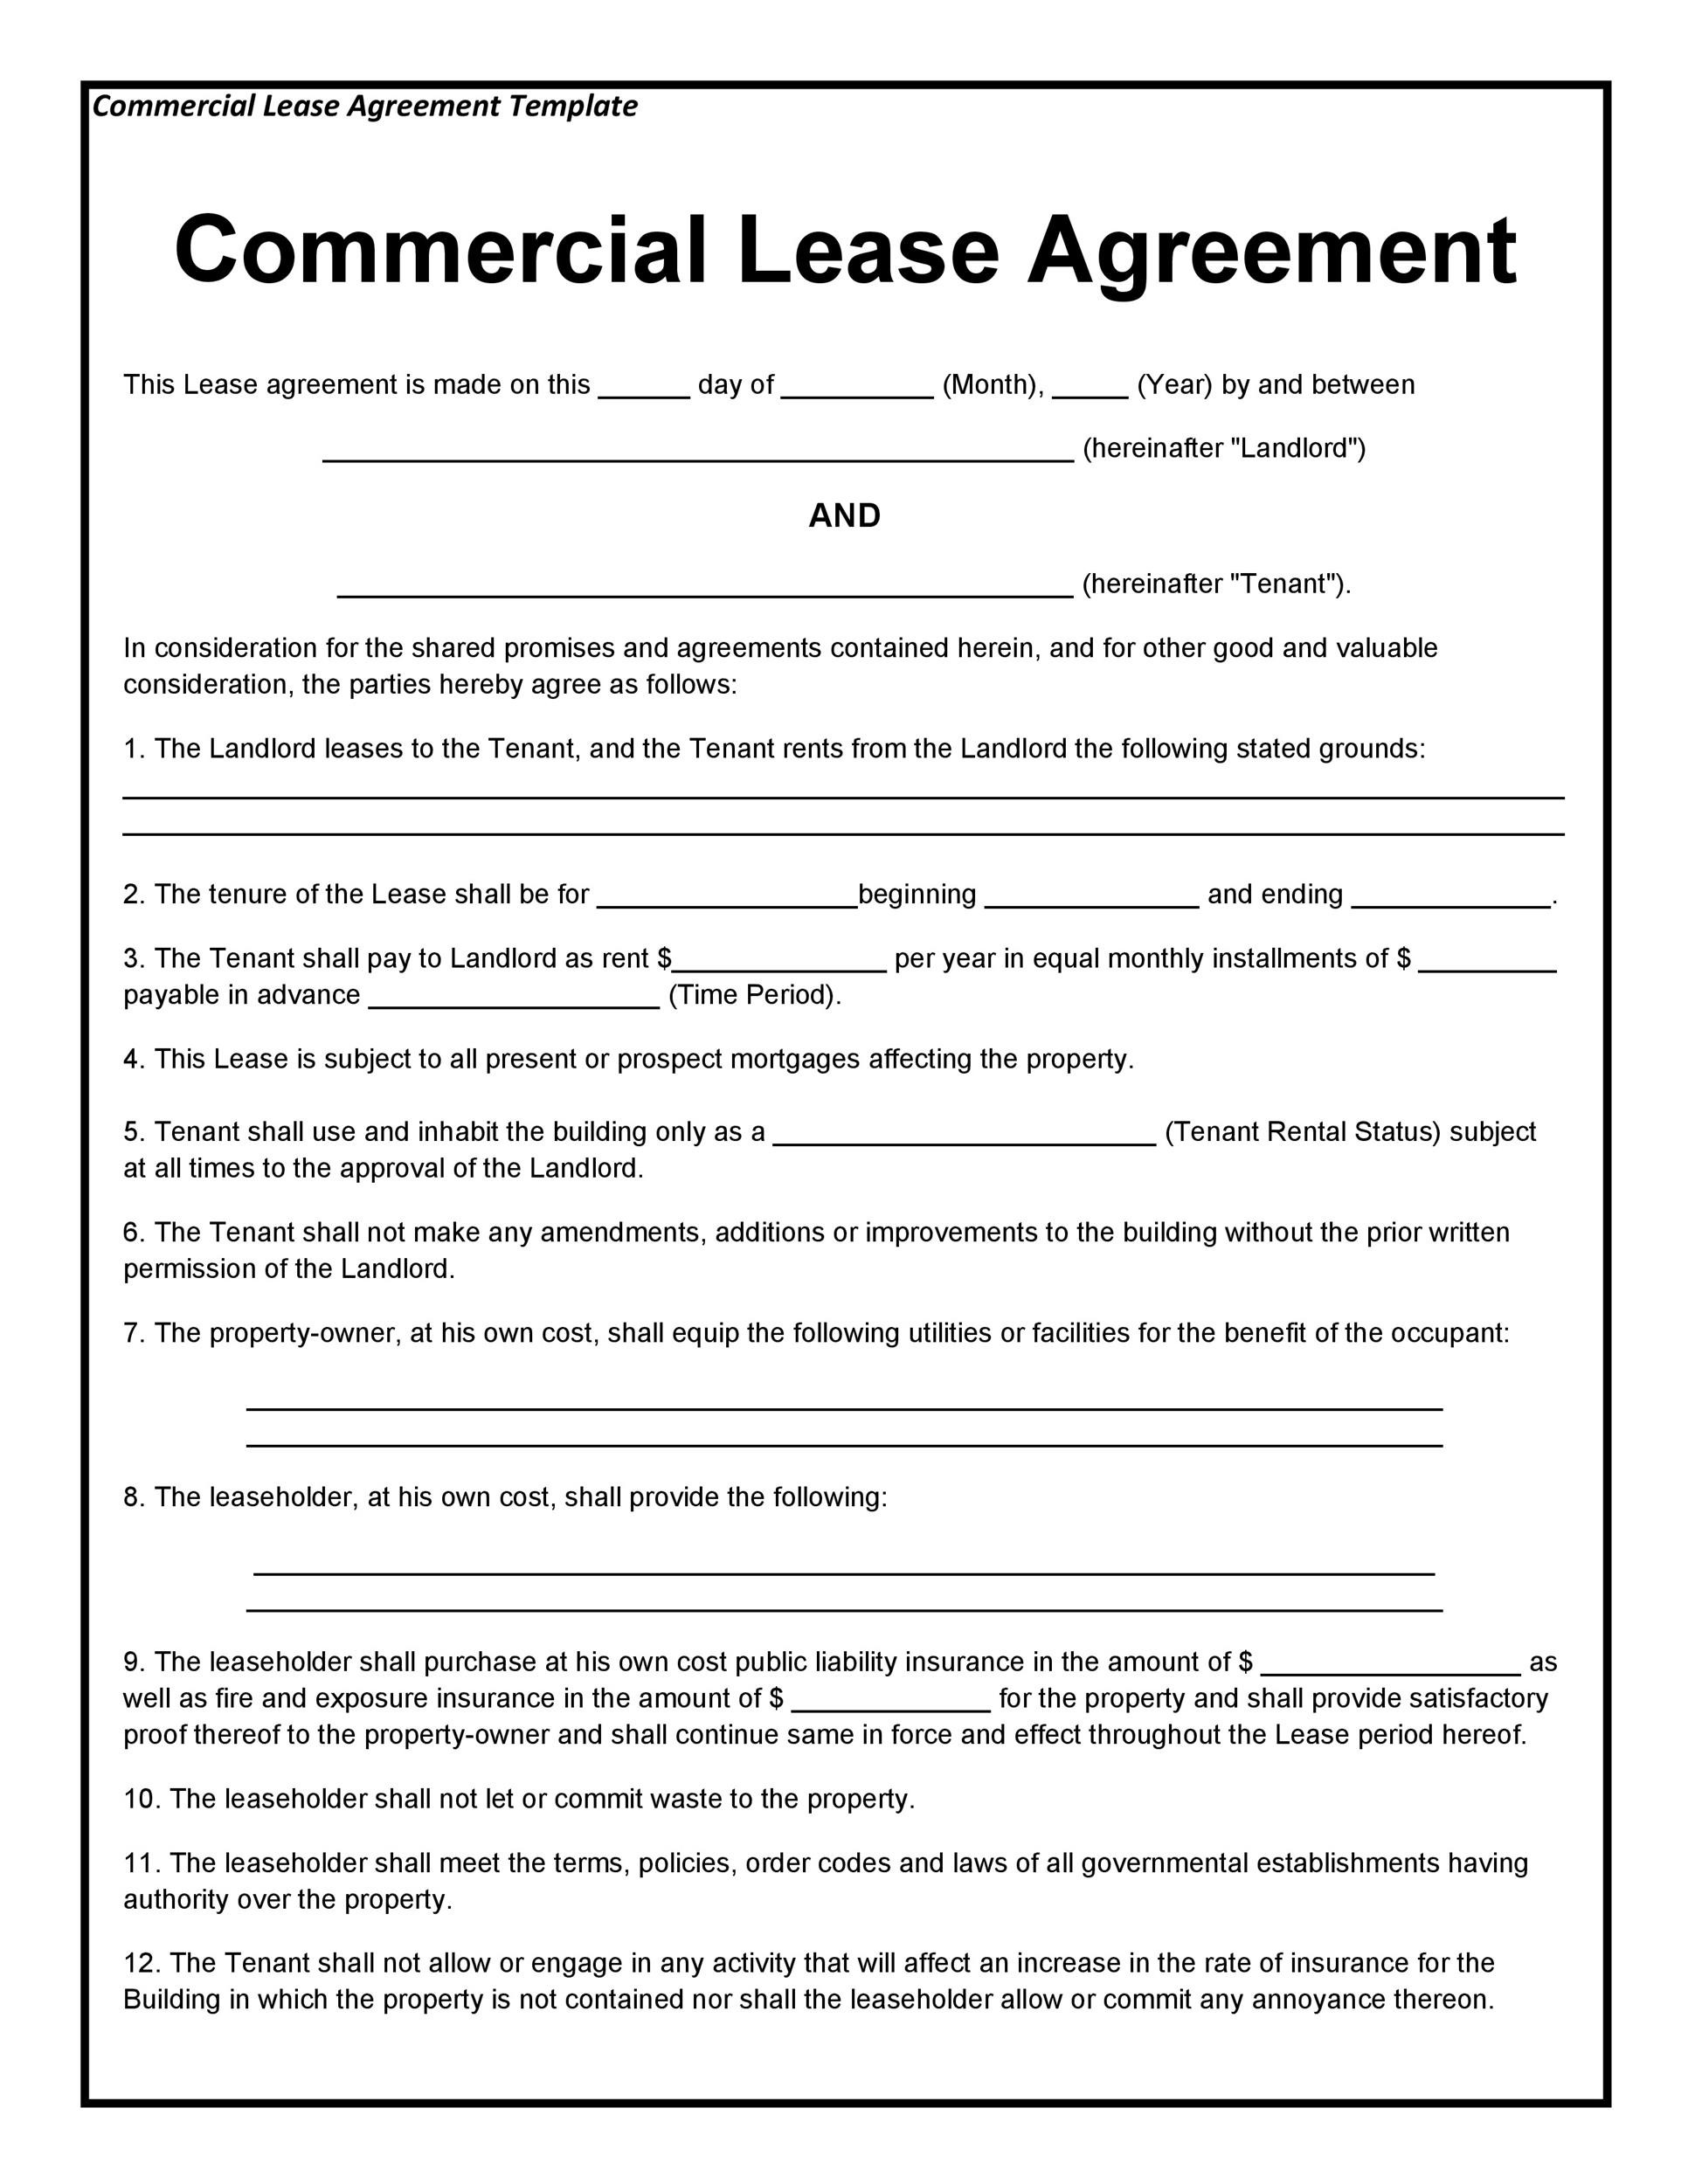 Free Commercial Lease Agreement Templates Template Lab - Free commercial lease agreement template download